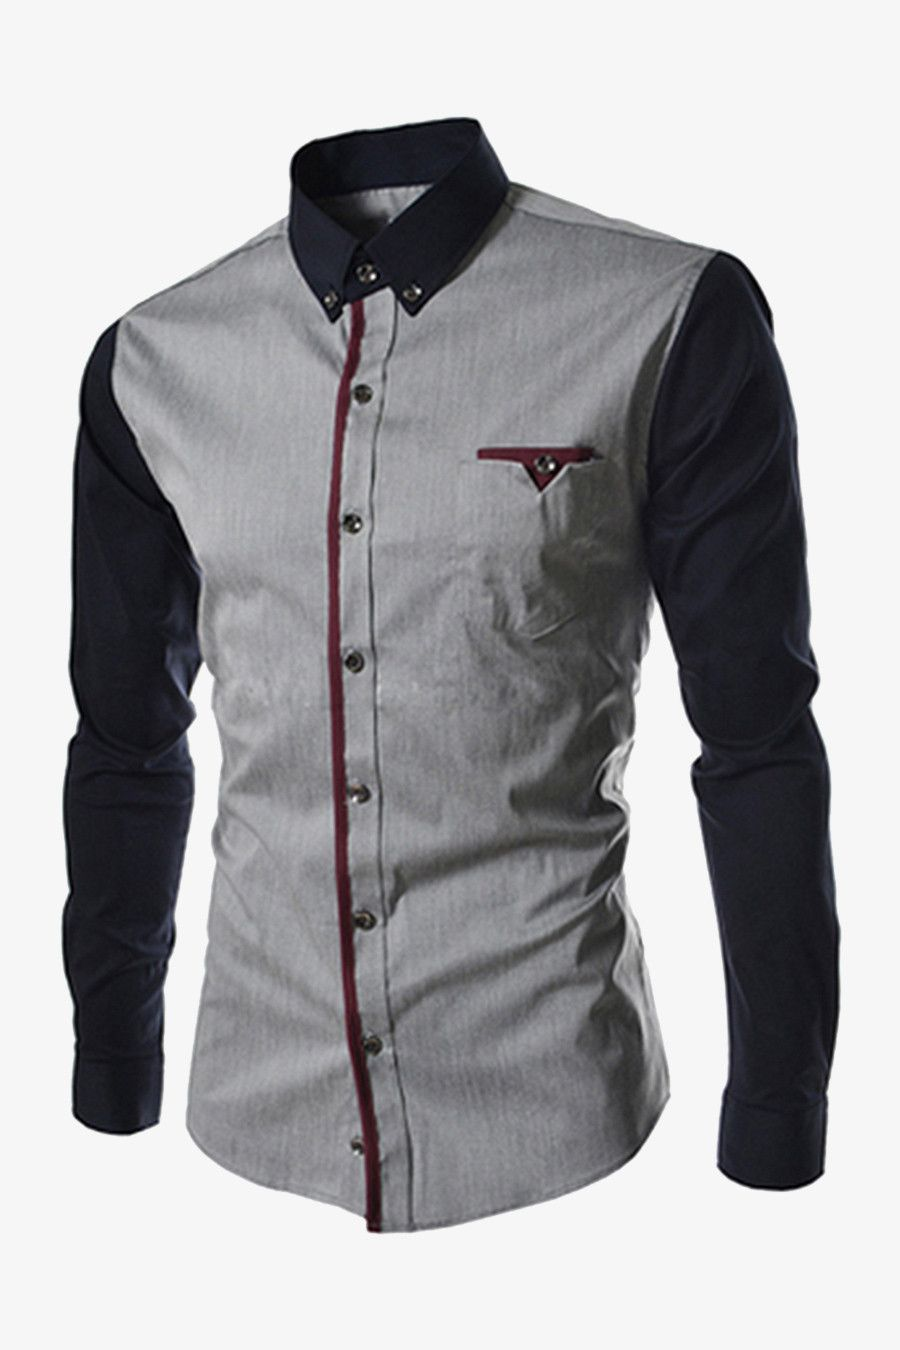 9a09824d3ccdb Men s Bicoloured Shirt In Gray